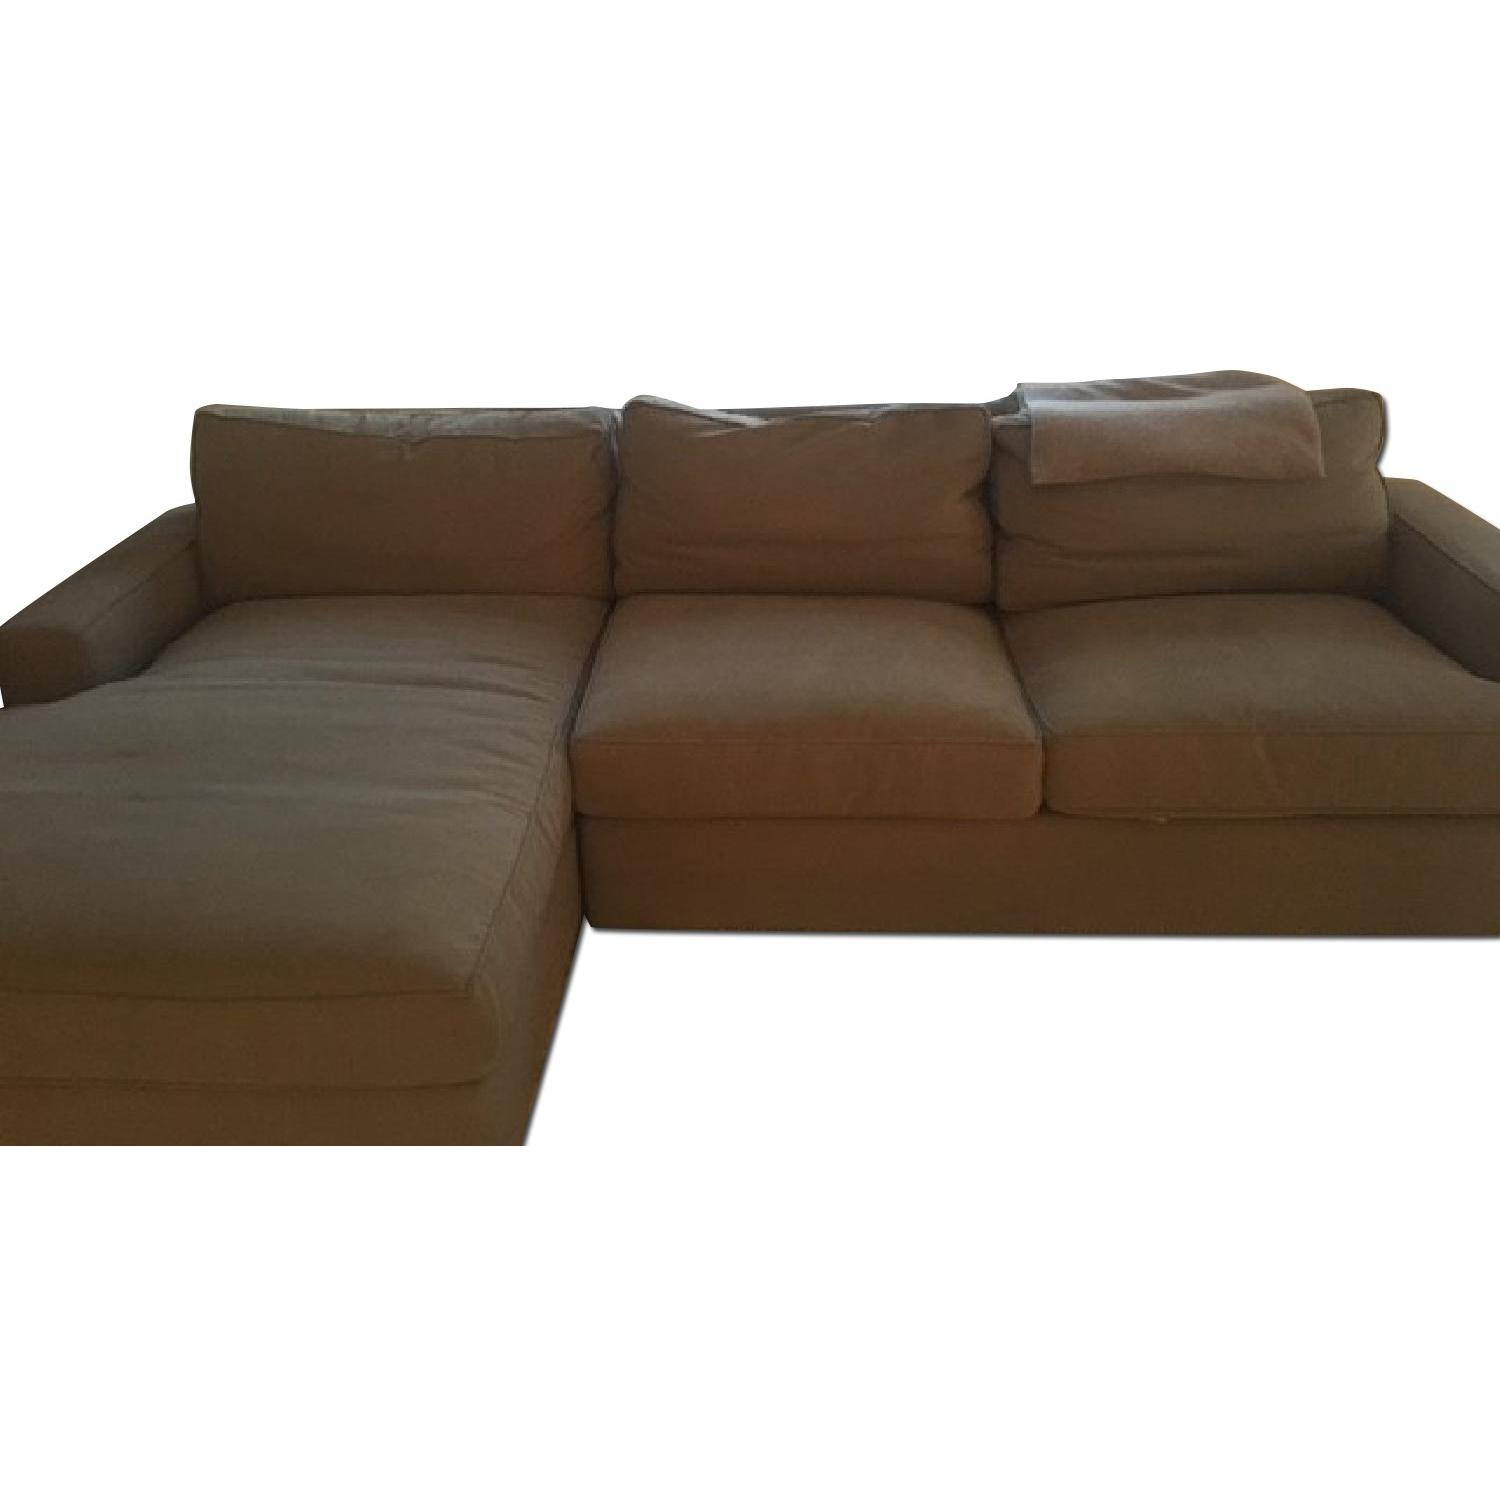 Room & Board Sectional w/ Chaise - image-0